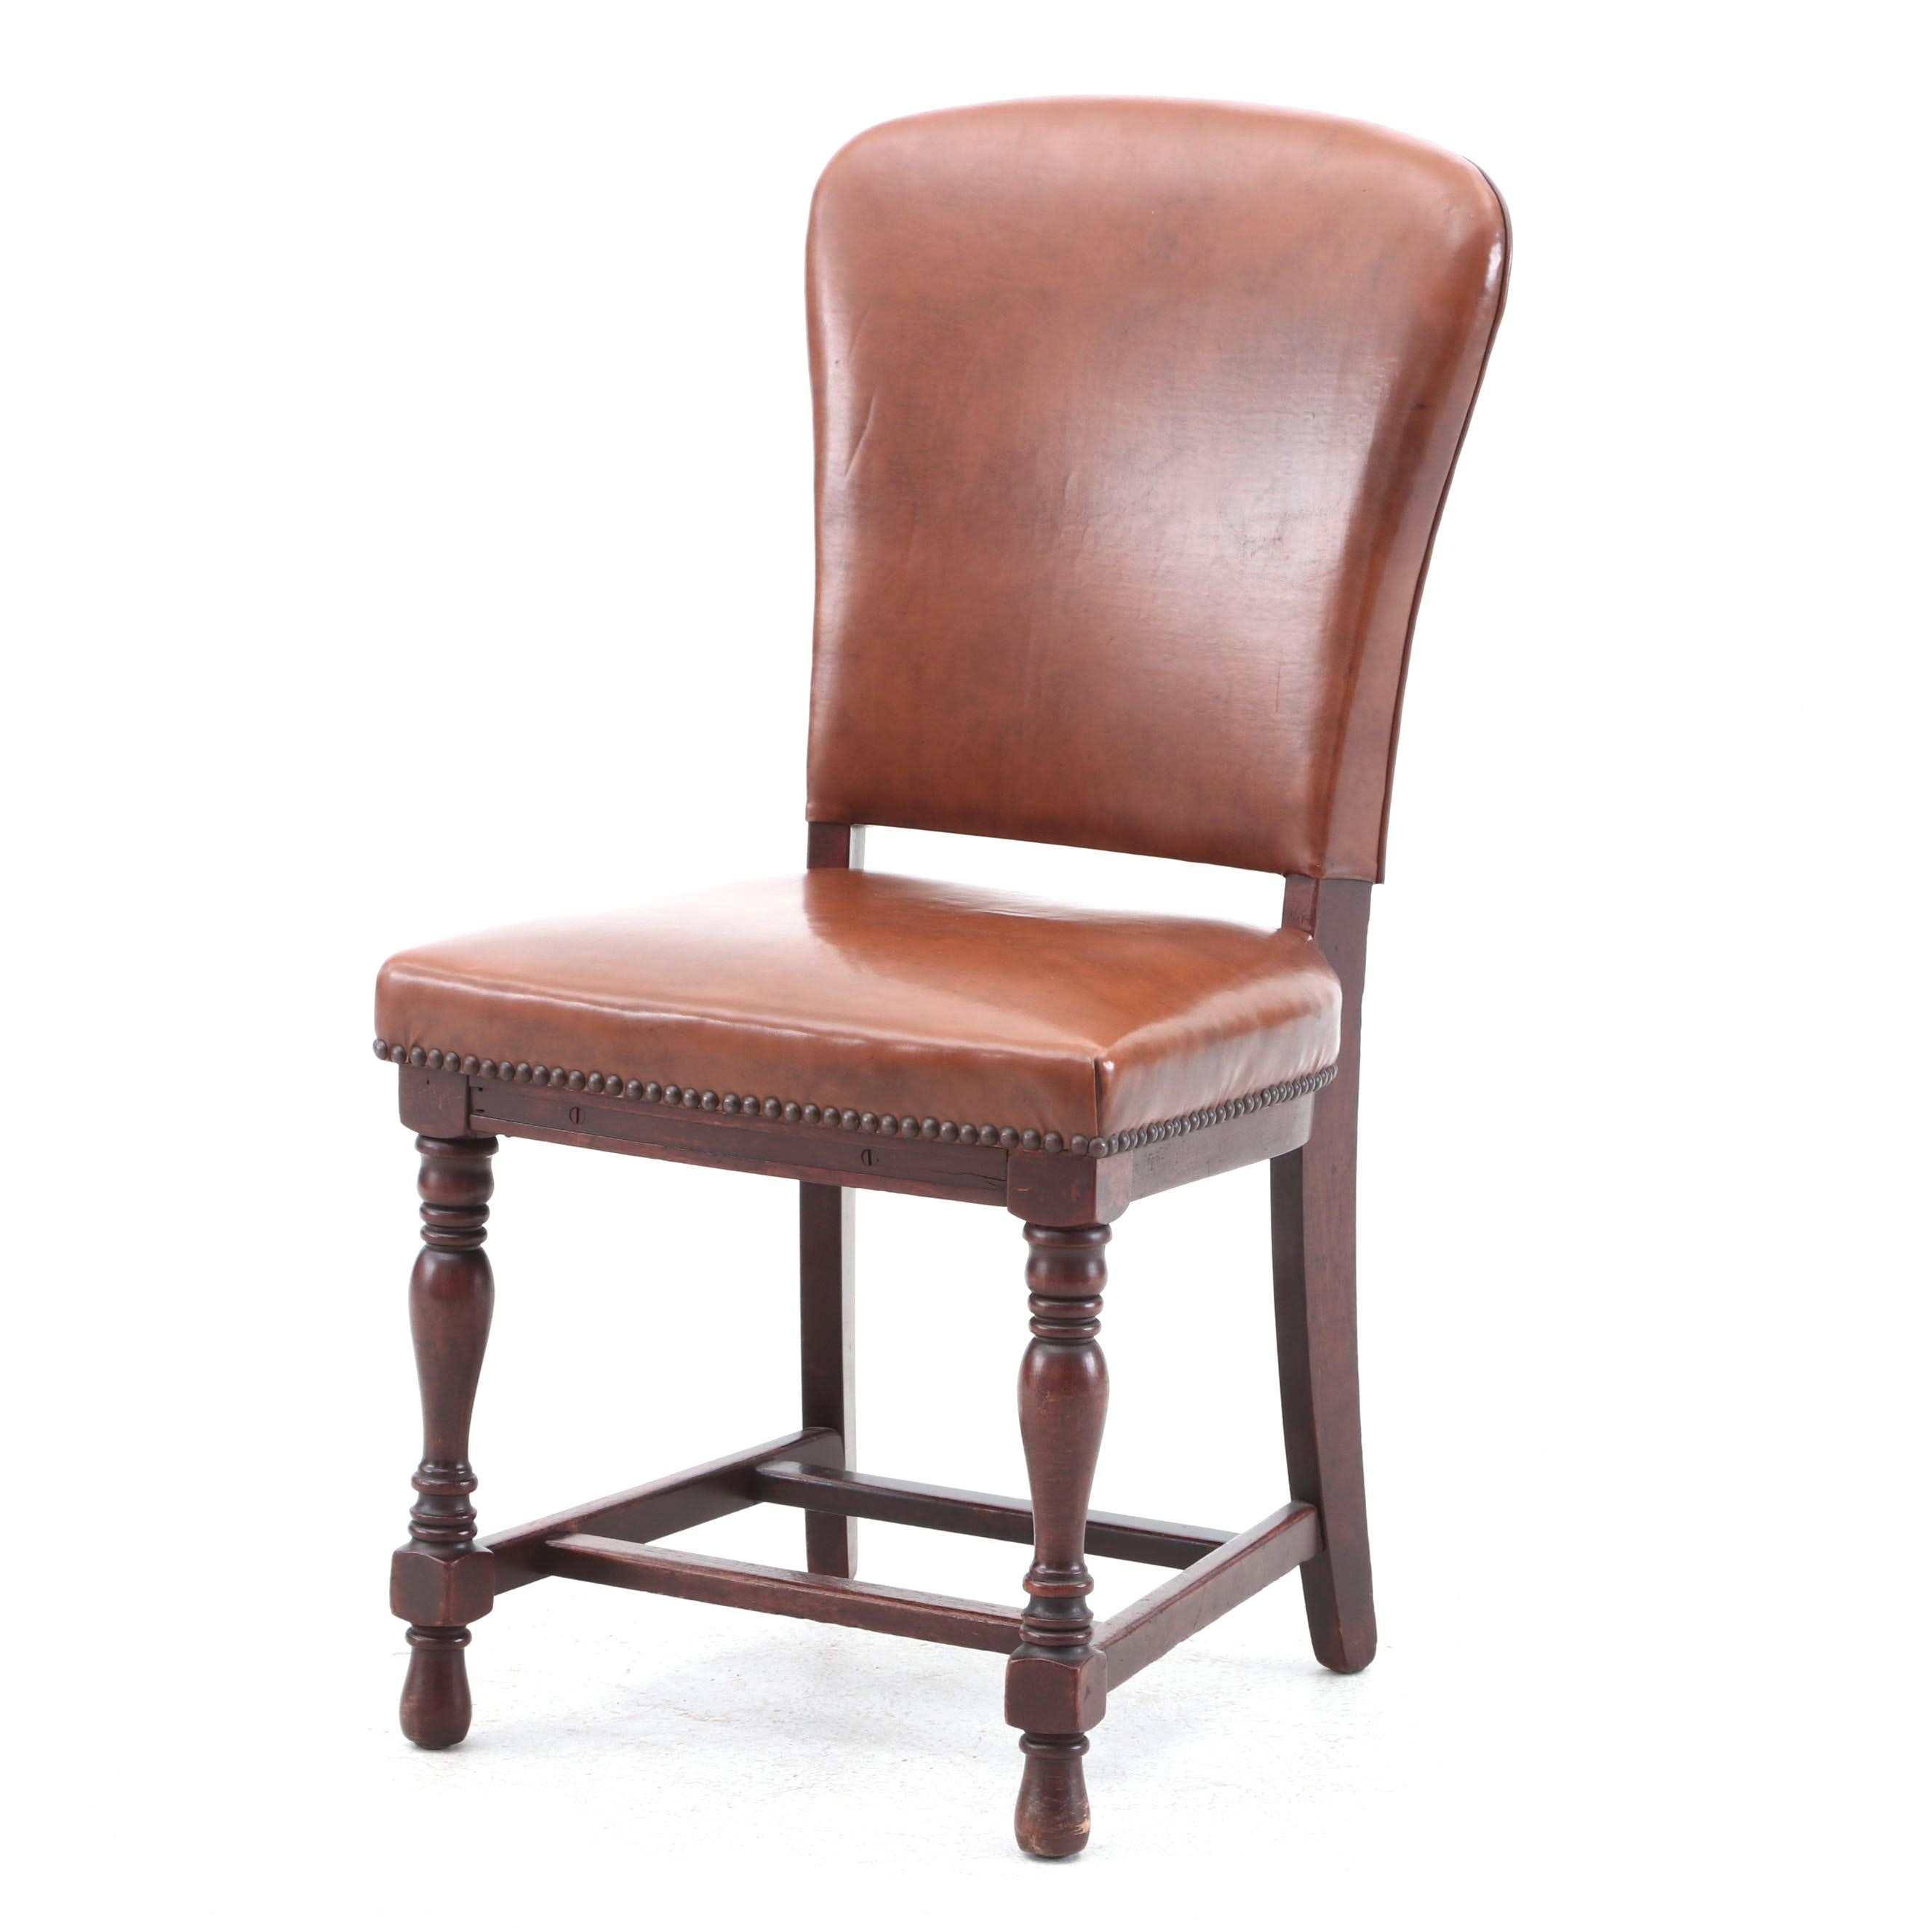 Circa 1920s-1930s Leather Upholstered Chair in Walnut